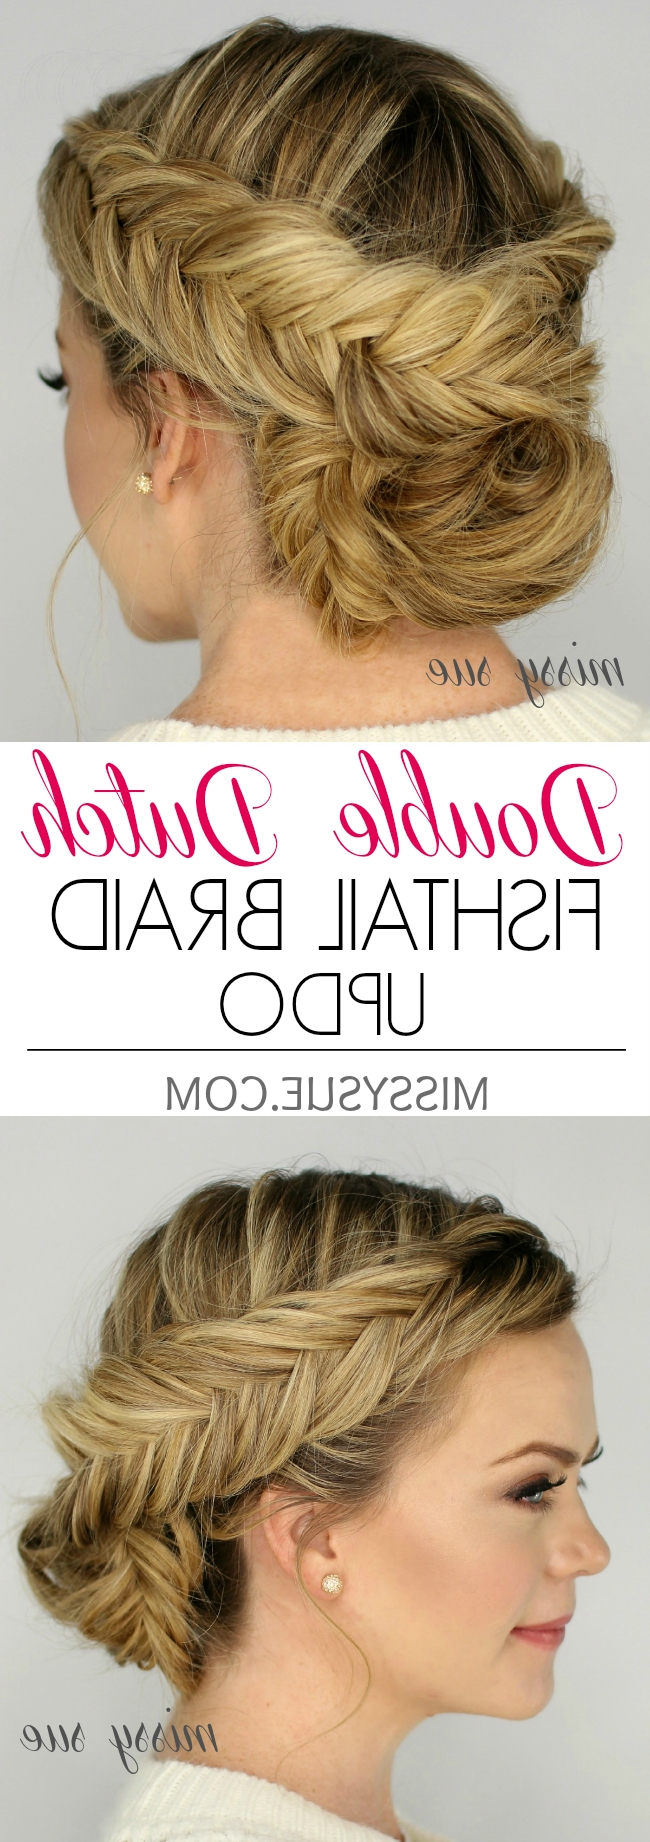 Favorite Double Braids Updo Hairstyles Within Double Dutch Fishtail Braid Updo (View 7 of 15)